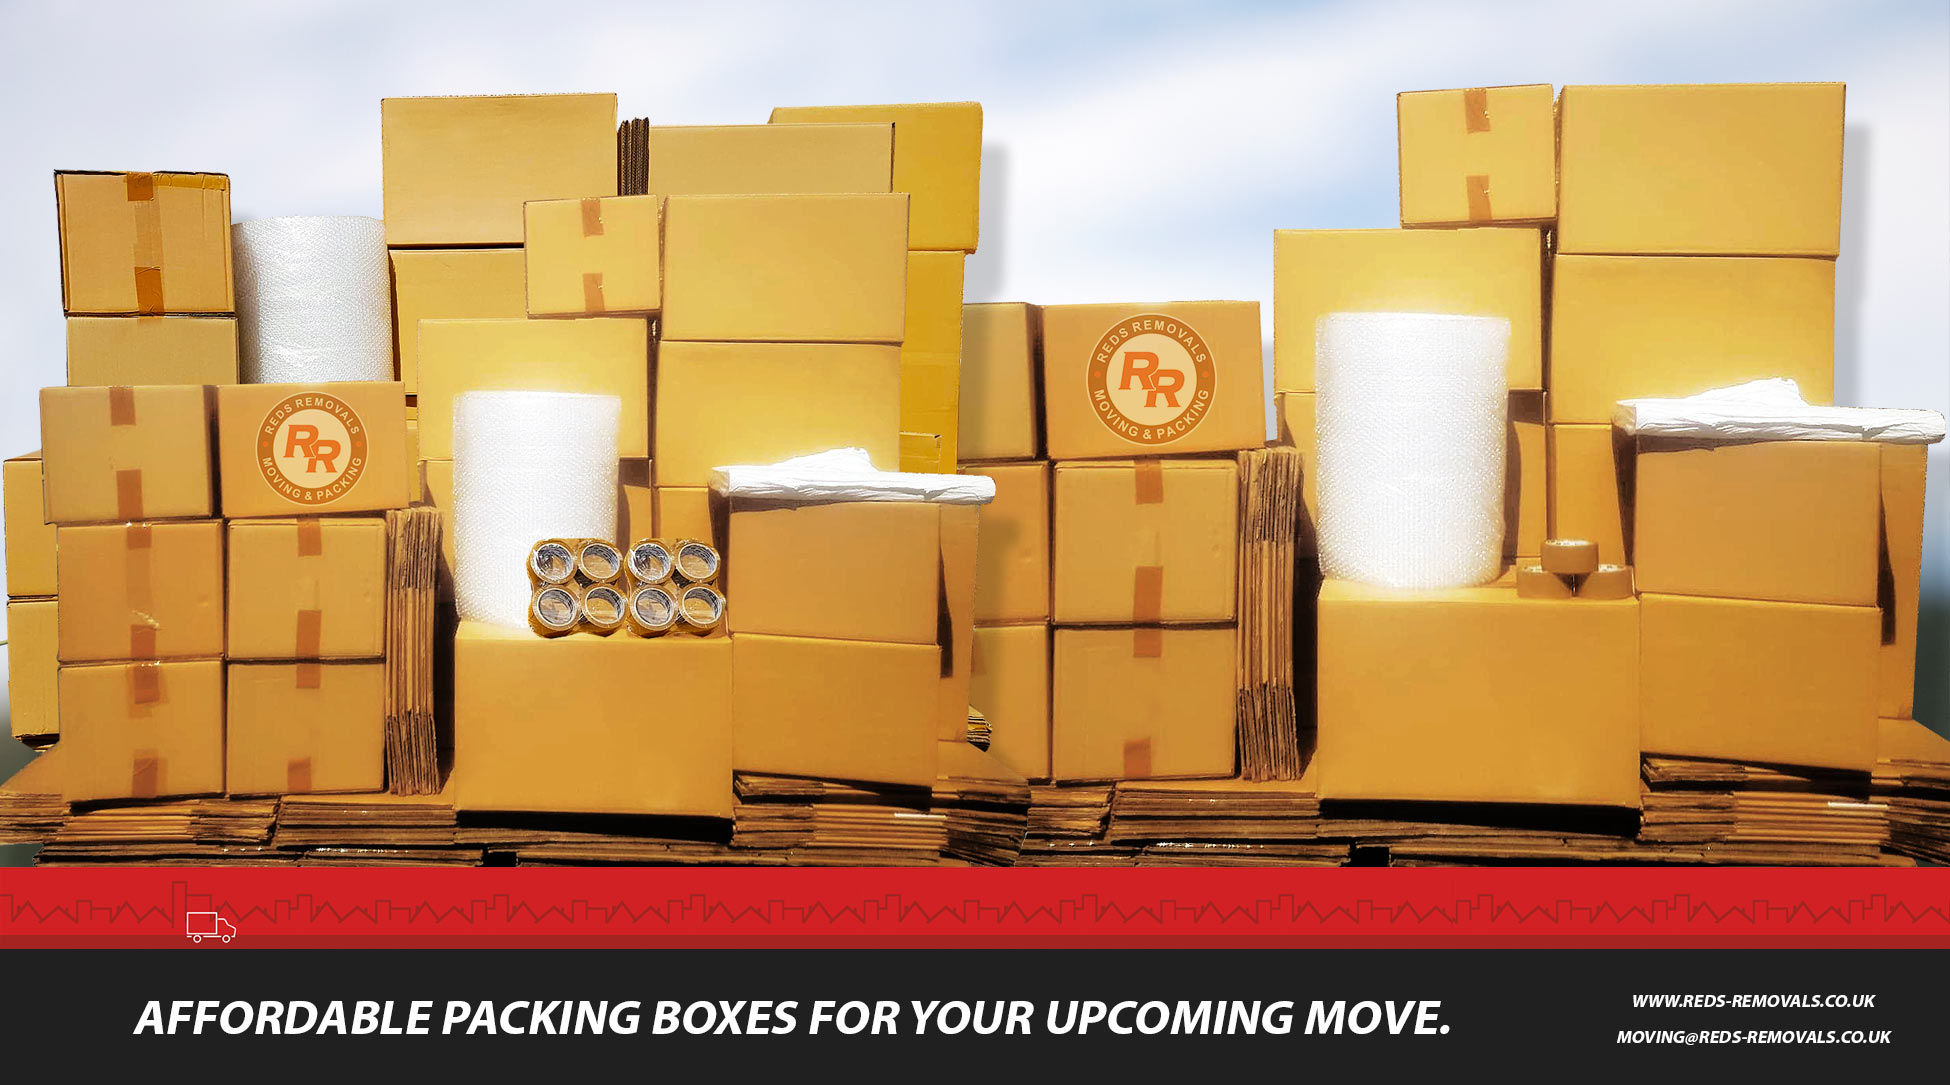 Packing Boxes | Packing Materials | Reds Removals packing service in Stockton-on-tees, North East.